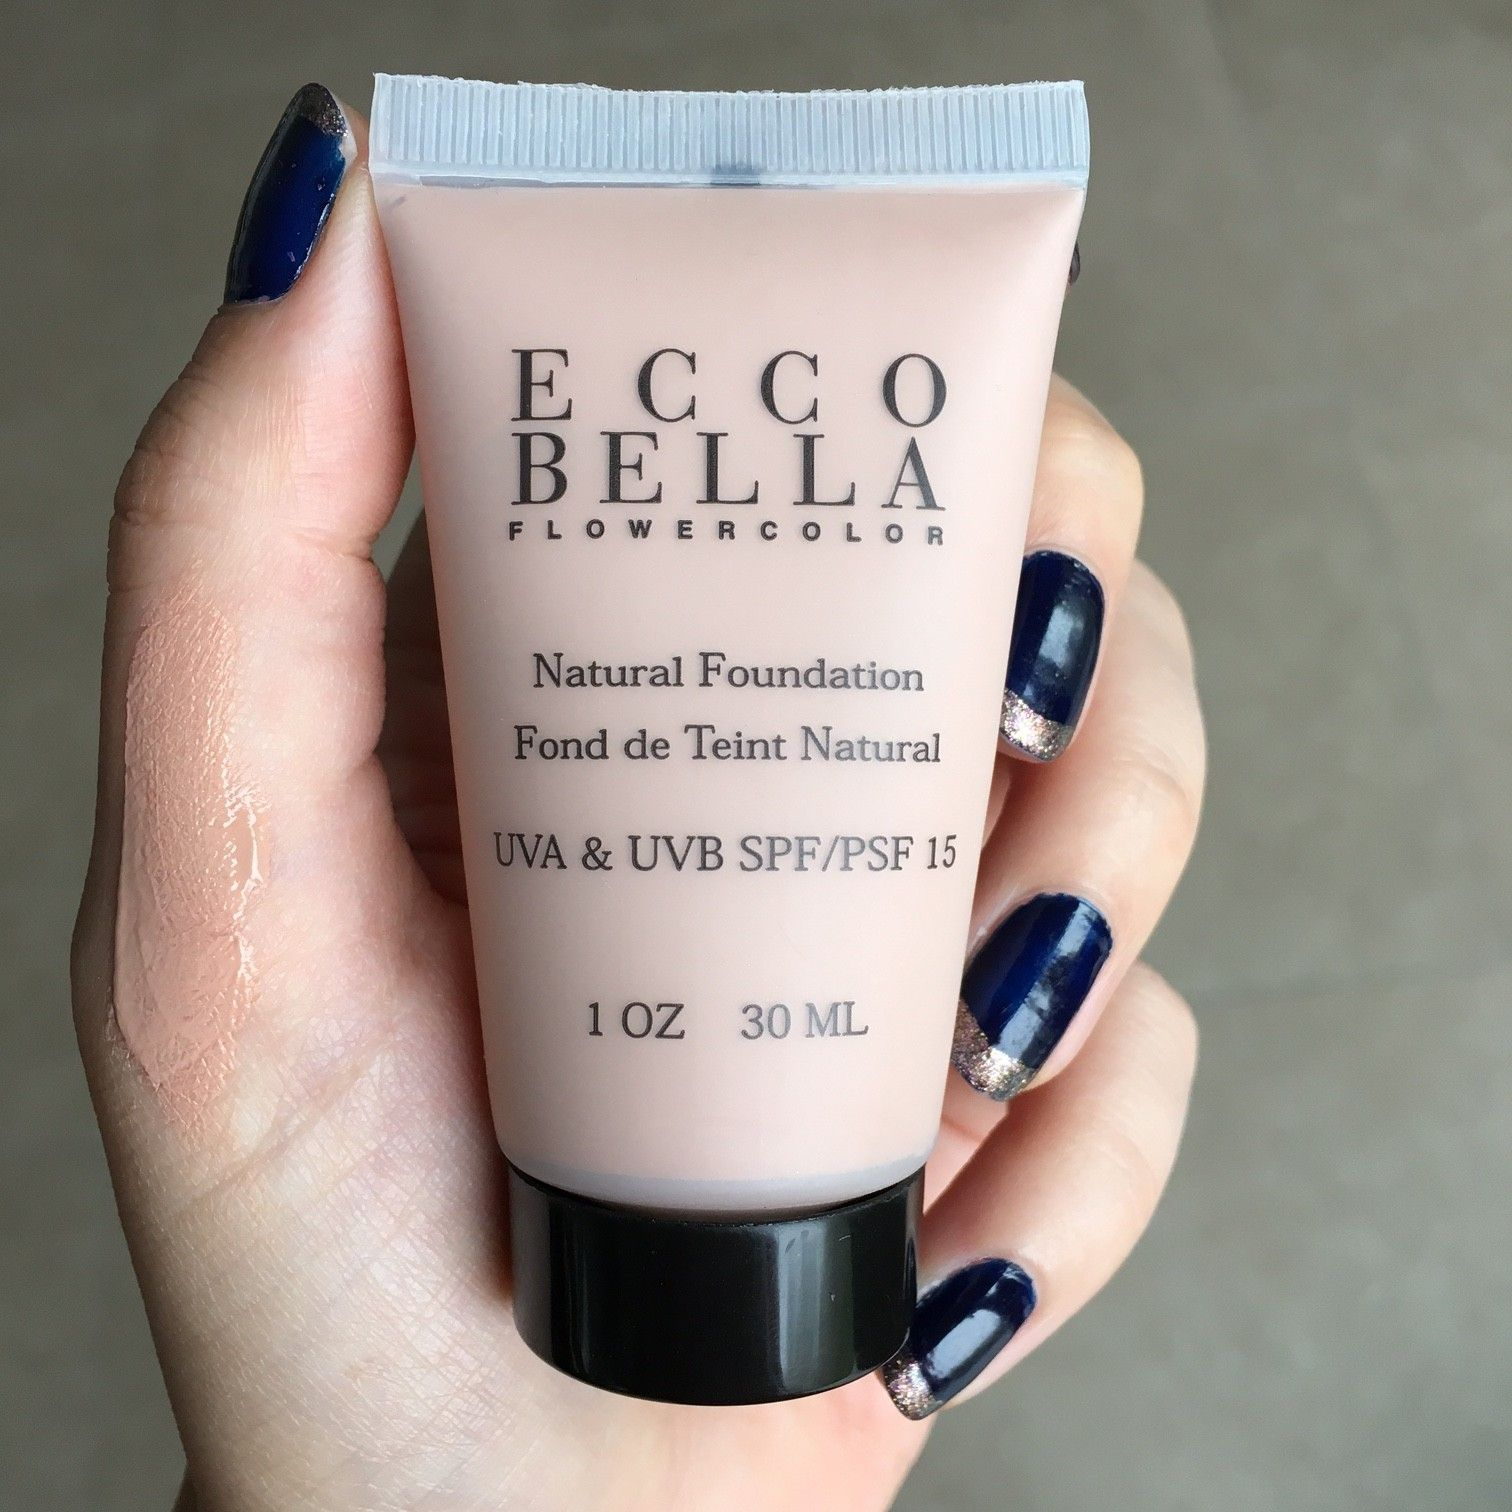 Ecco Bella AllNatural & Organic Makeup Review Natural